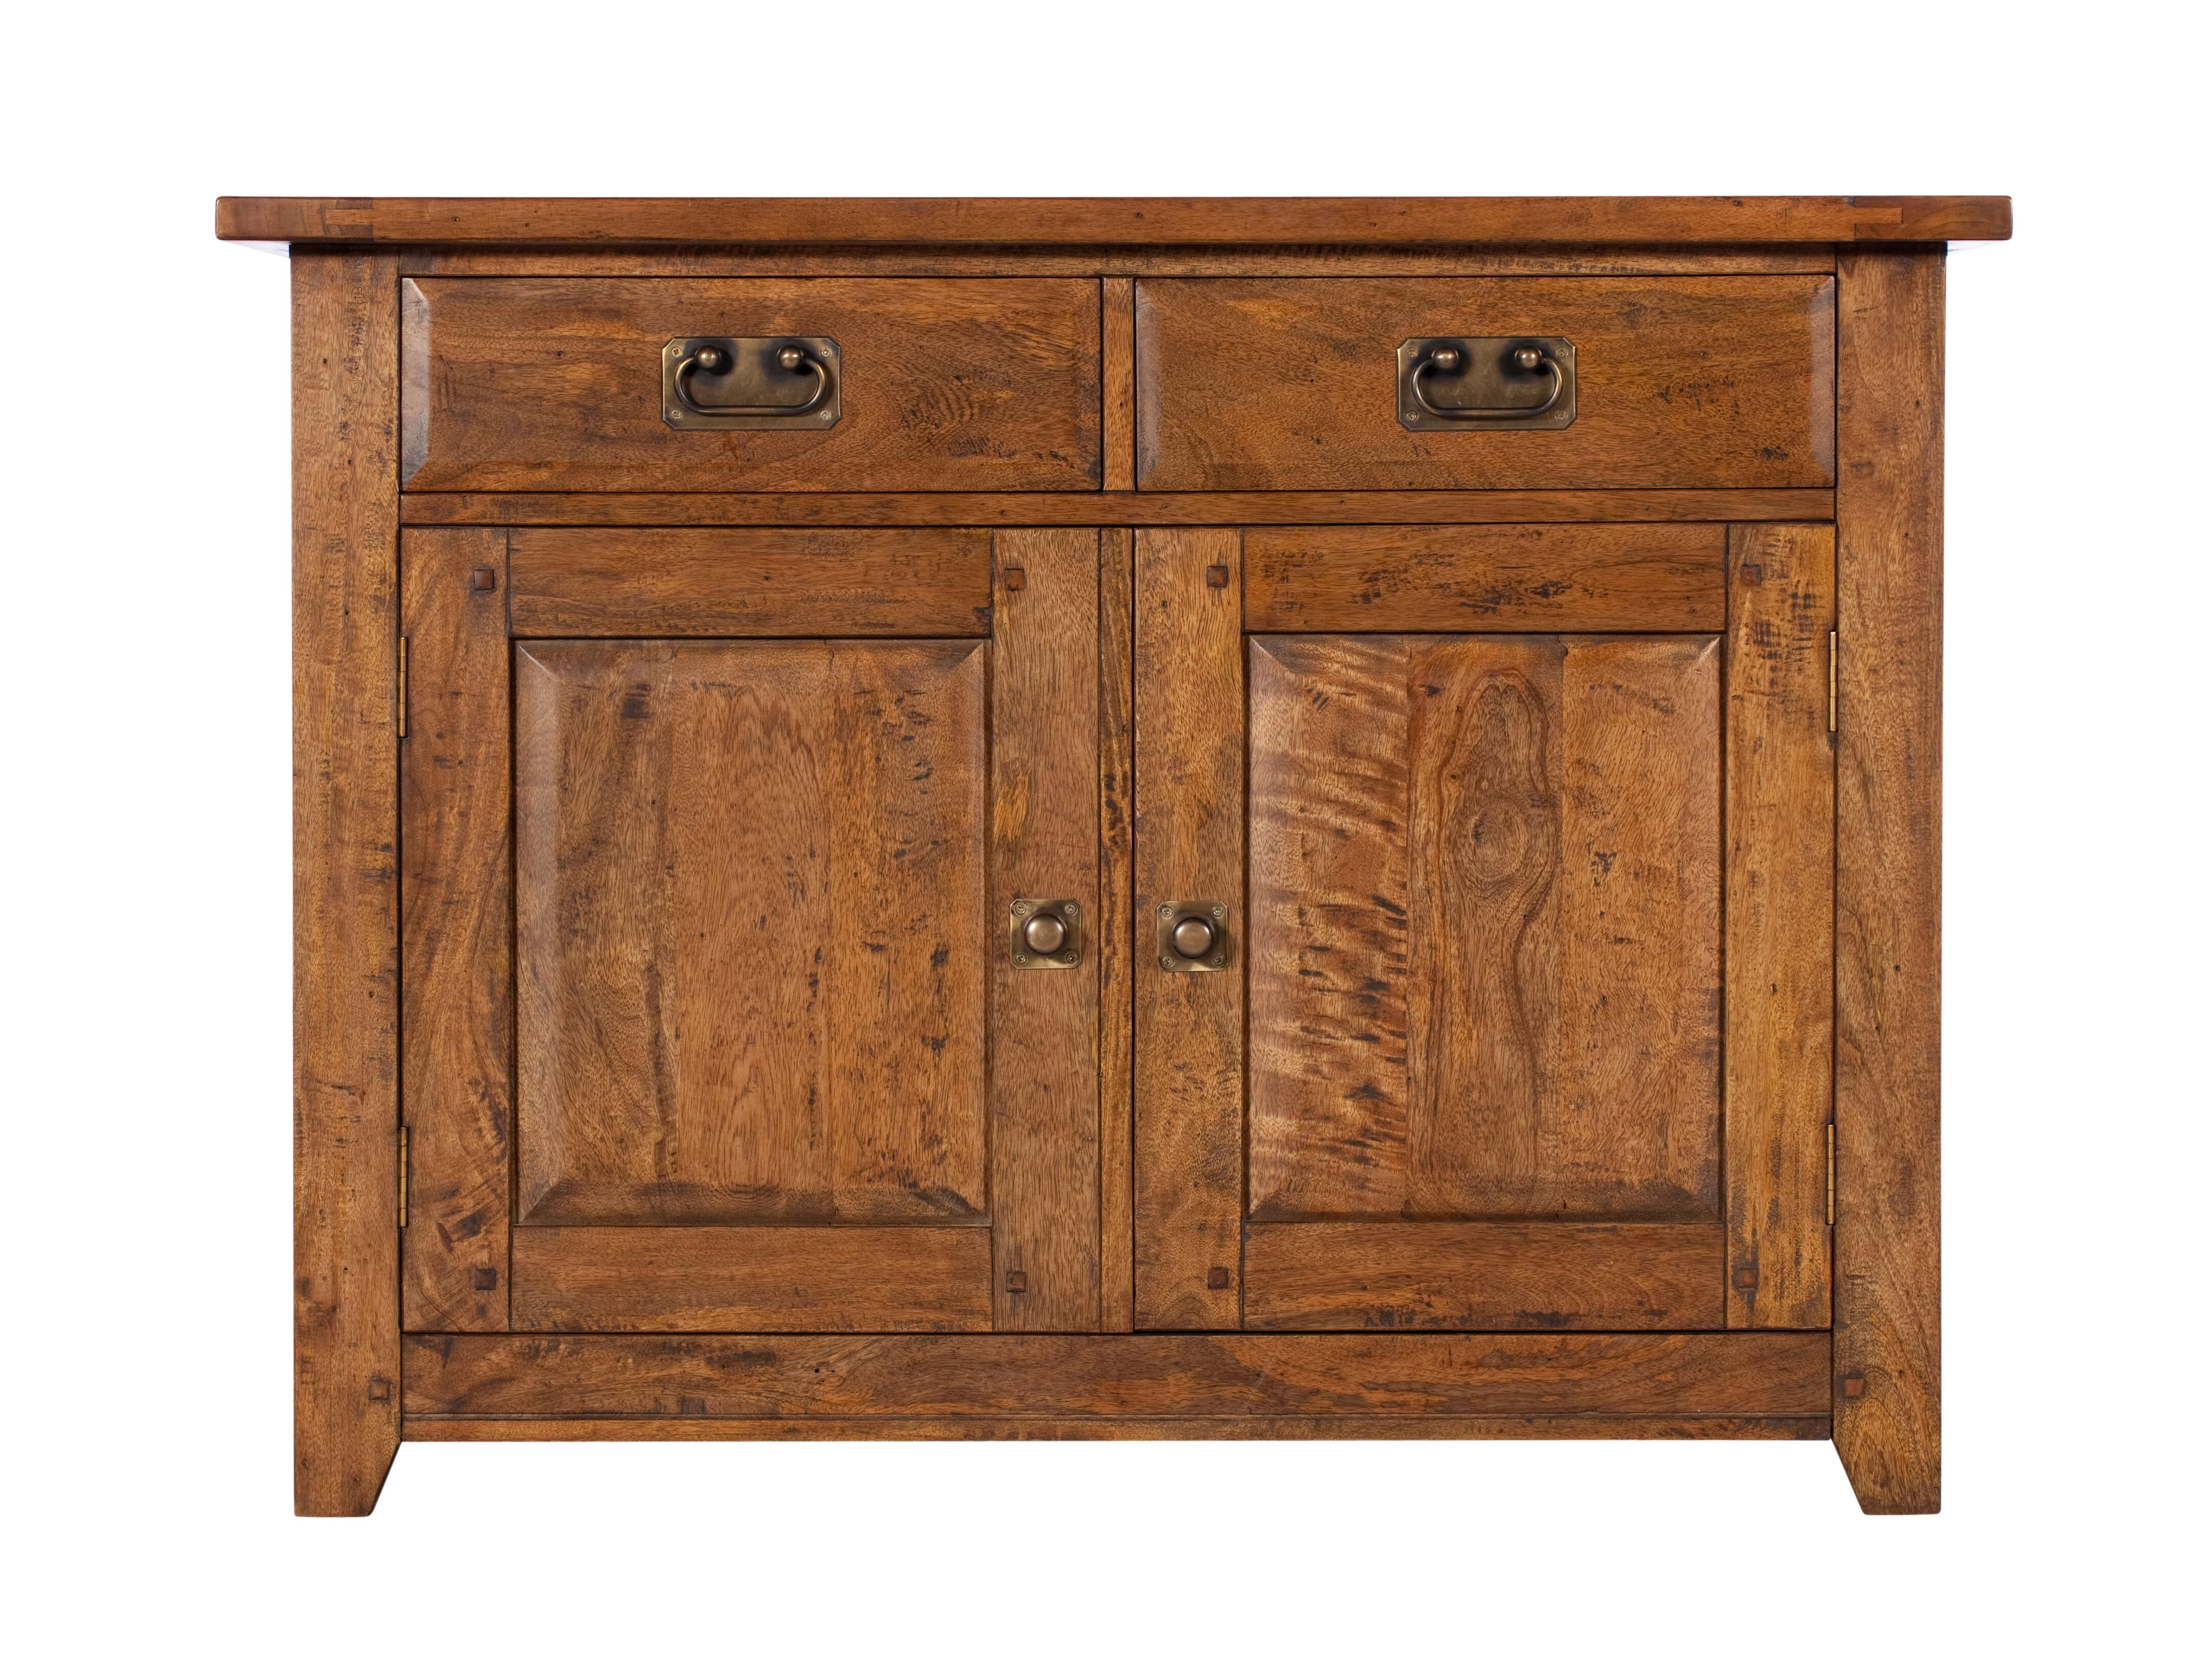 Marlborough narrow sideboard